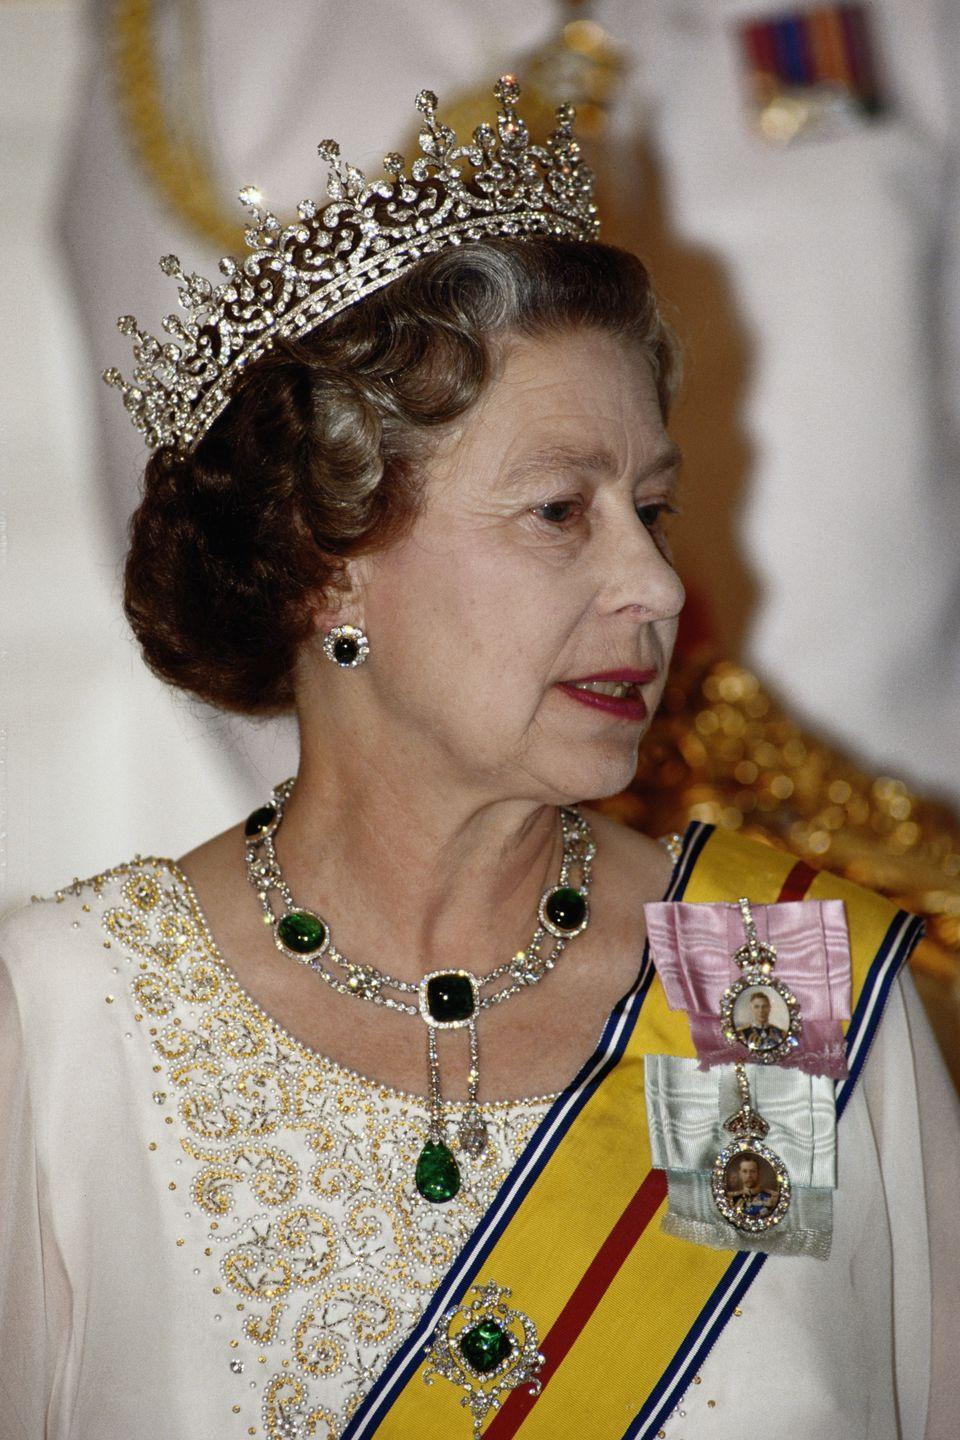 """<p>The Queen's emerald necklace and matching earrings, worn here on October 14, 1989, are known as the Cambridge and Delhi Durbar Parure. The tiara is Queen Mary's Girls of Ireland Tiara (also known affectionately as """"Granny's Tiara""""), which belonged to Elizabeth II's grandmother, Queen Mary. The tiara originally featured large pearls, which were removed on Queen Mary's orders and refashioned into the <a href=""""http://www.townandcountrymag.com/society/tradition/a10302981/cambridge-love-knot-tiara/"""" rel=""""nofollow noopener"""" target=""""_blank"""" data-ylk=""""slk:Cambridge Lover's Knot Tiara"""" class=""""link rapid-noclick-resp"""">Cambridge Lover's Knot Tiara</a>, a favorite of both Princess Diana and Katherine, the Duchess of Cambridge.</p>"""